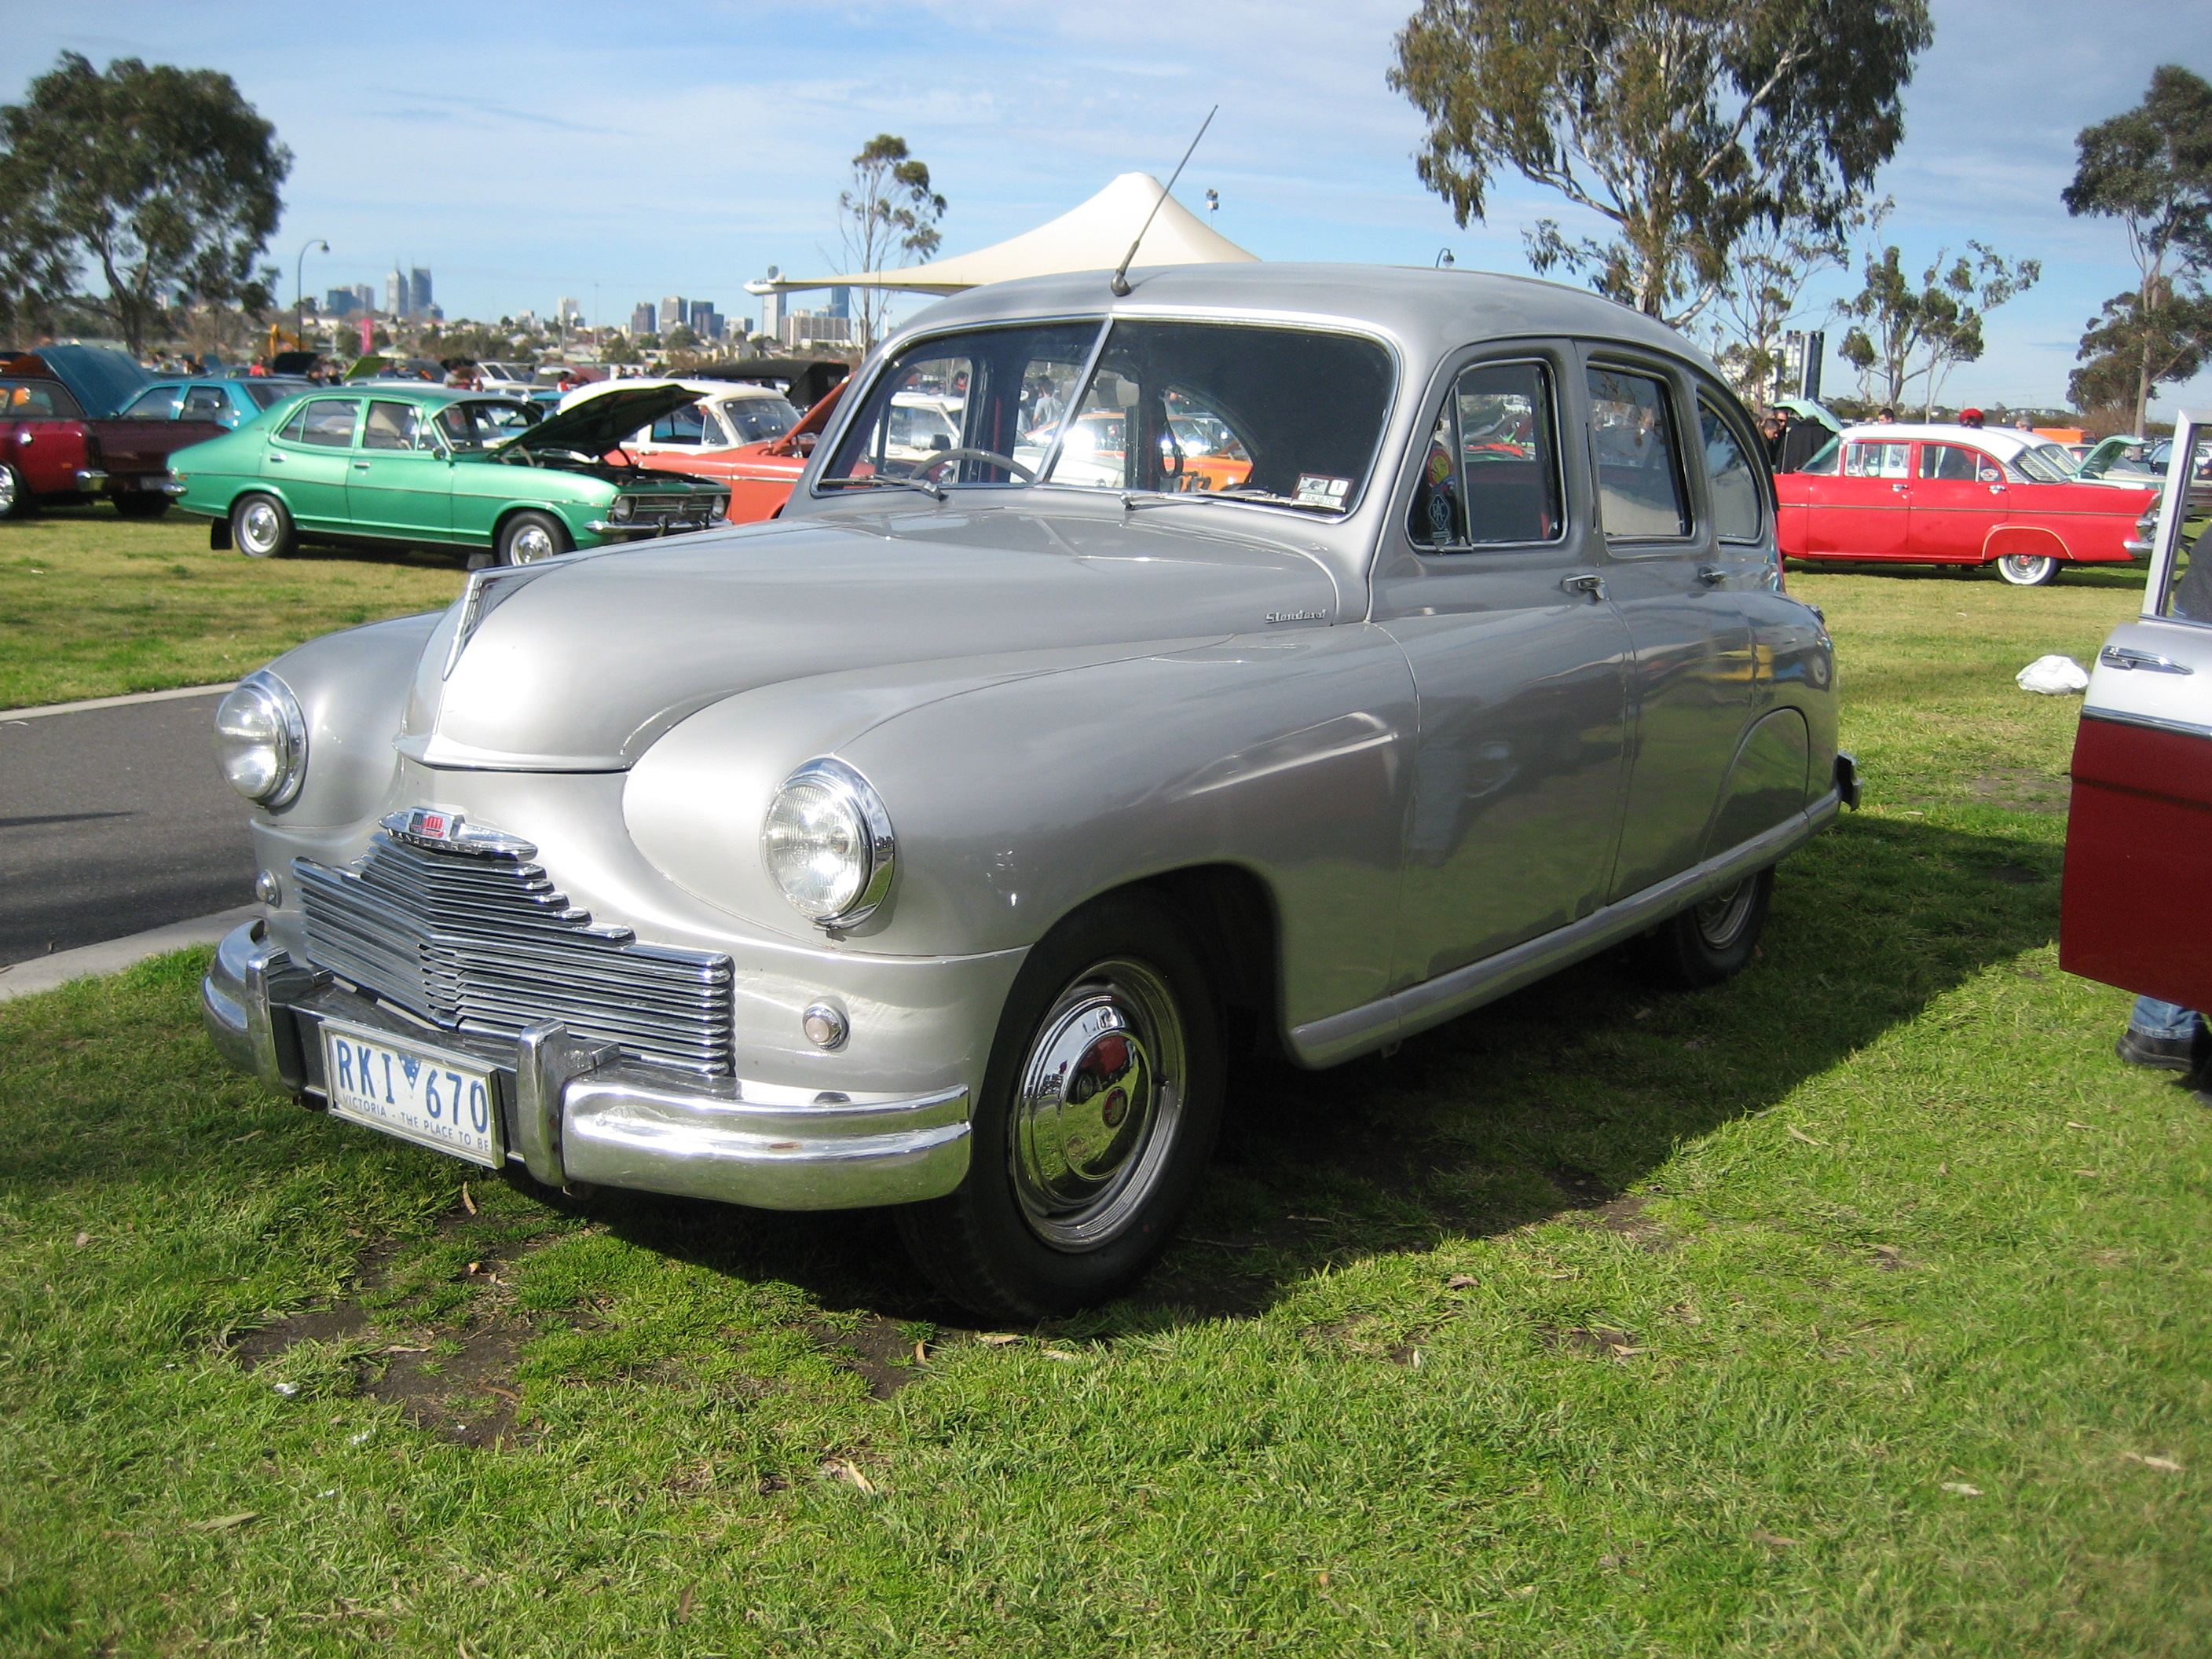 File:Standard Vanguard Phase 1 Saloon.jpg - Wikimedia Commons